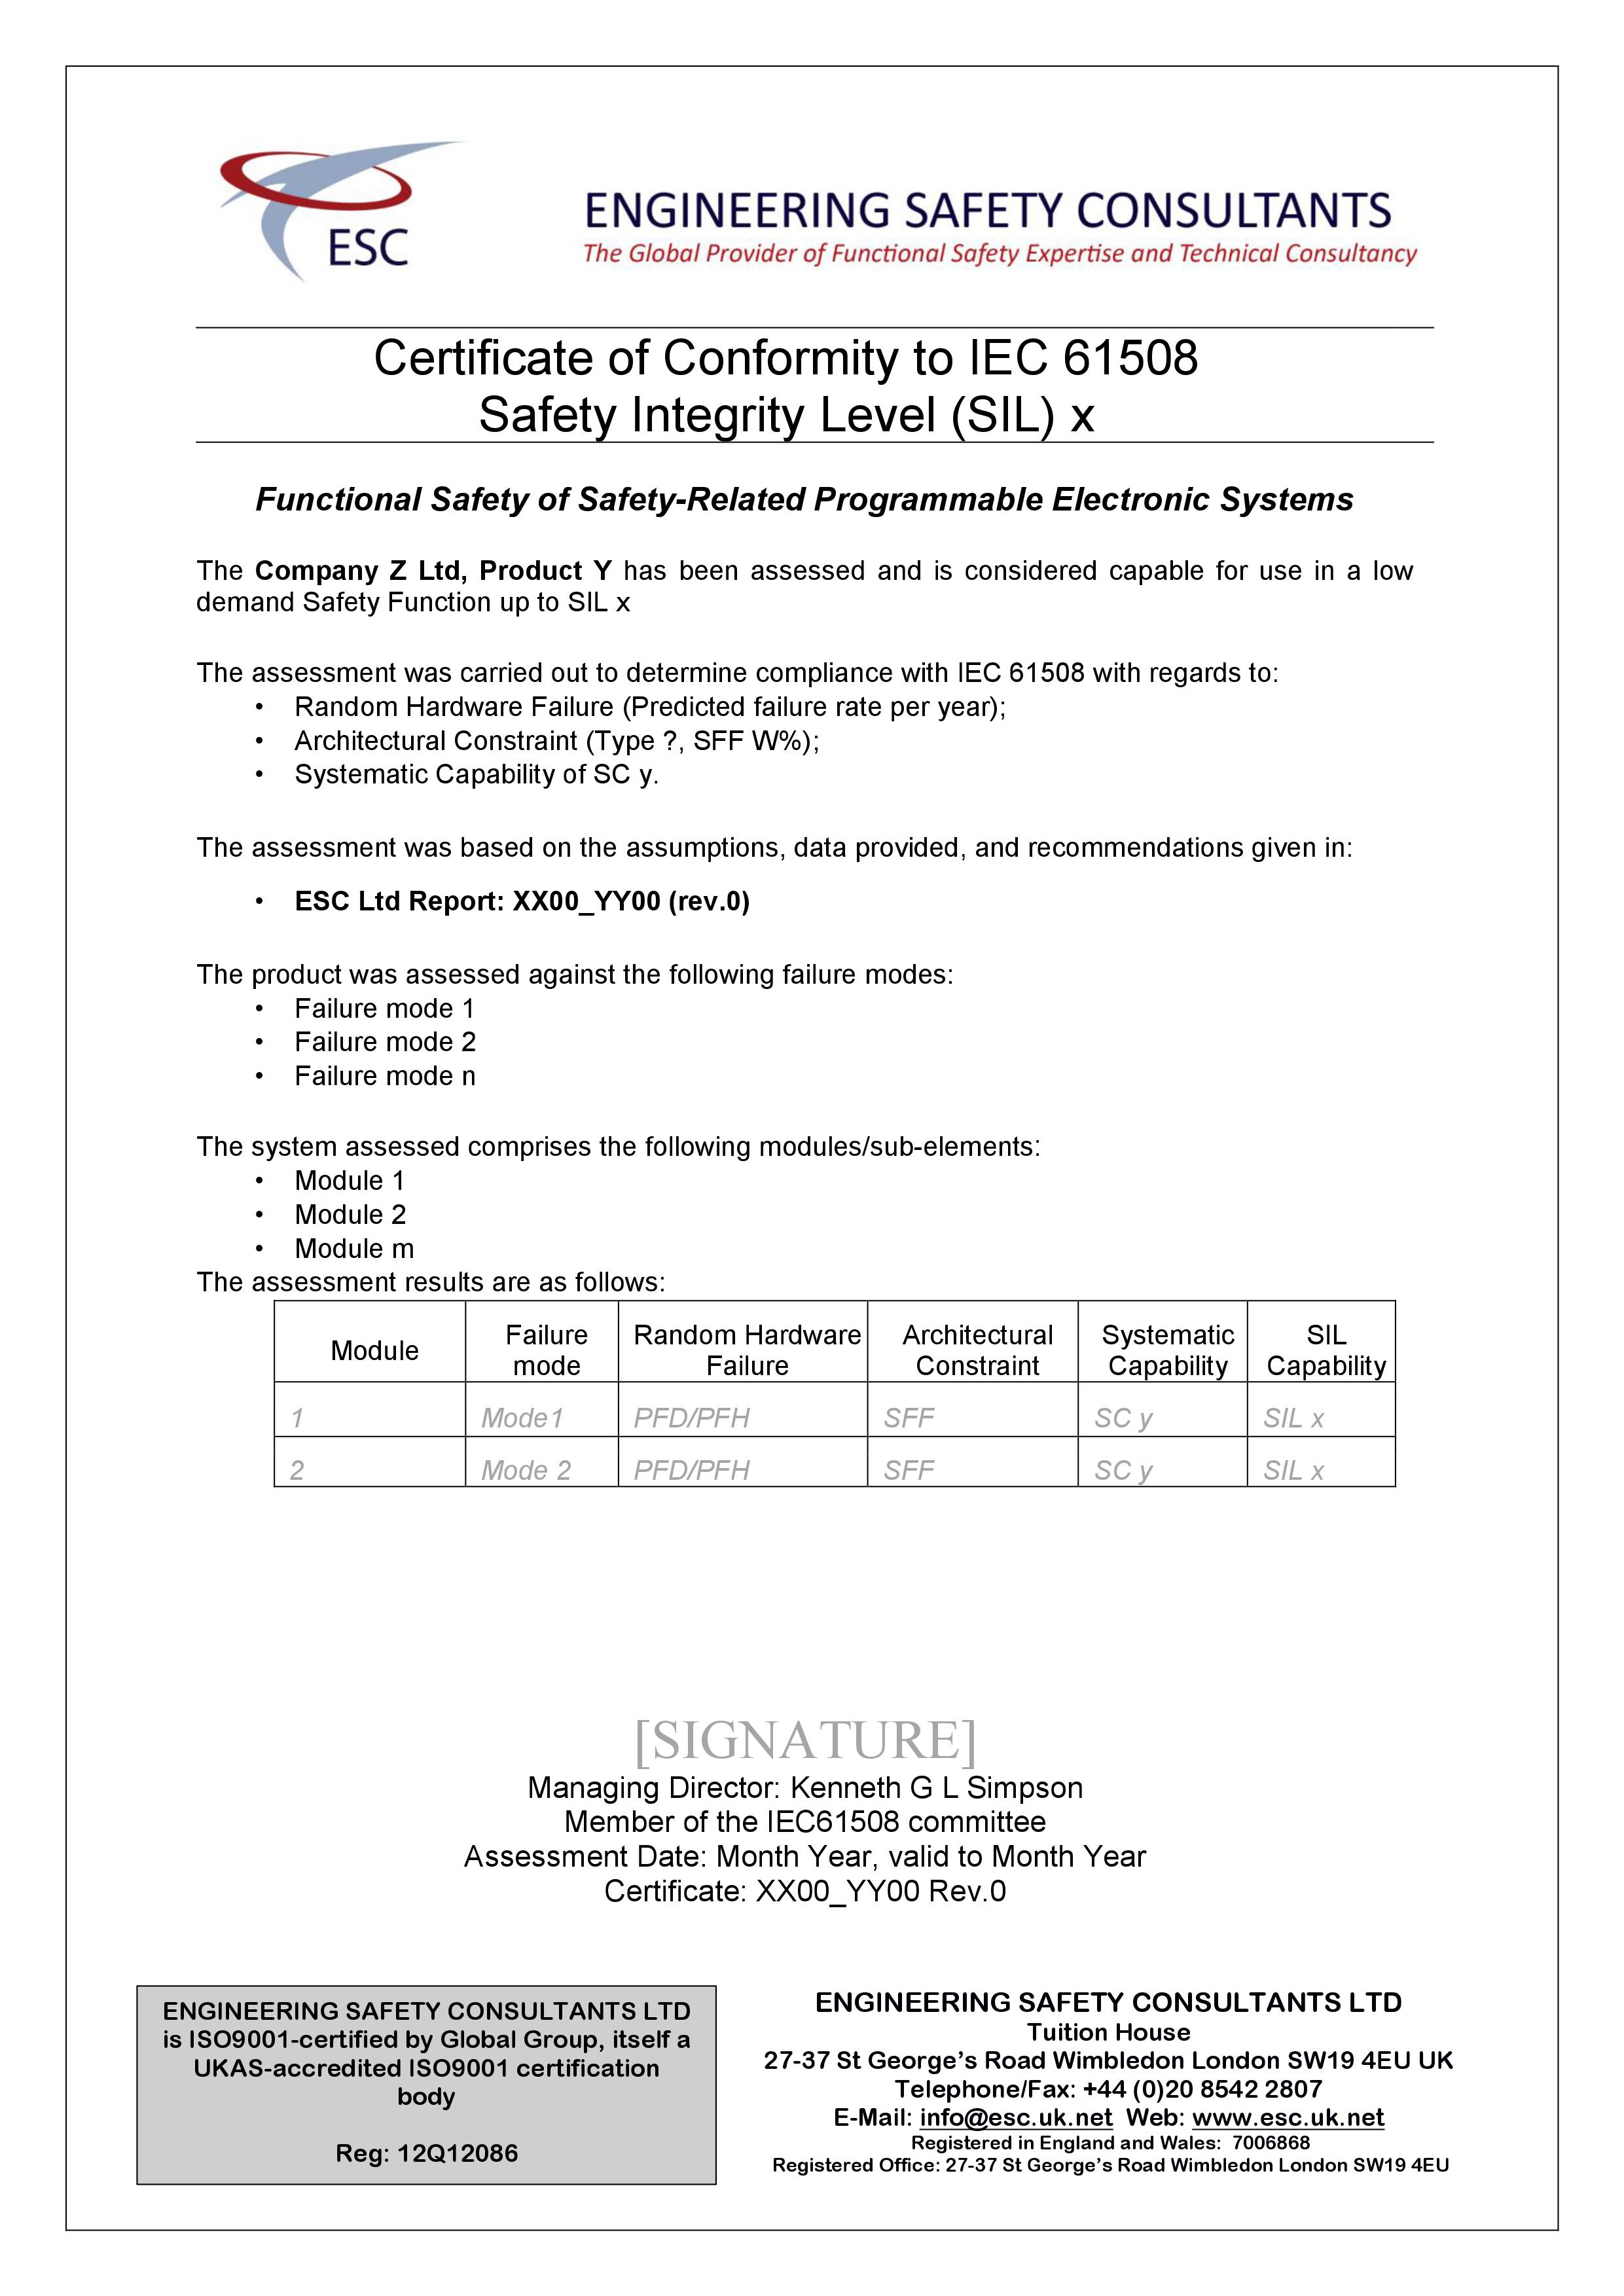 Product Certification Sil Capability Iec 61508